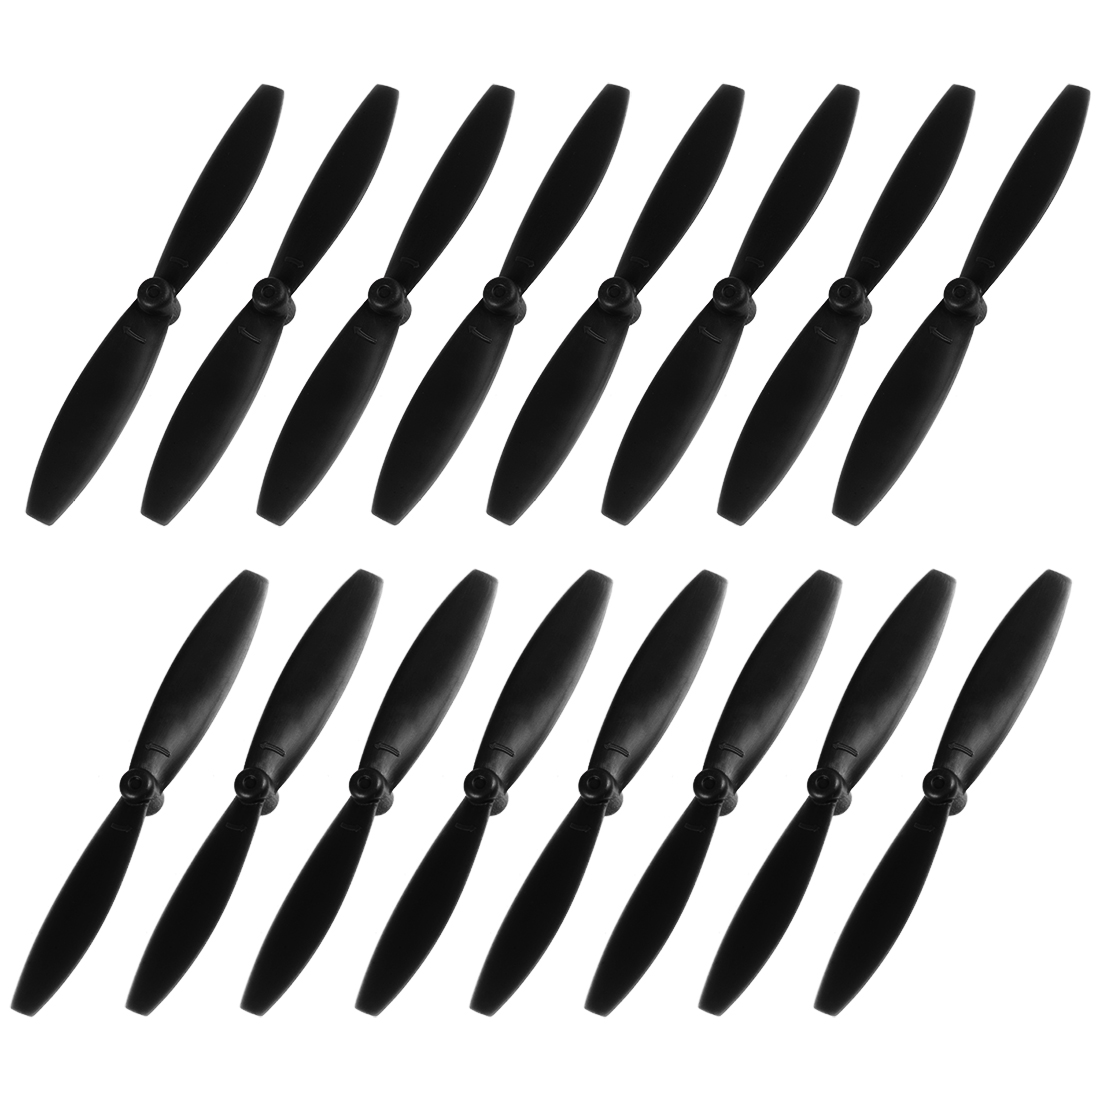 RC Propellers 65mm CW CCW 2-Vane for 720 8520 Coreless Motor FPV Black 8 Pairs